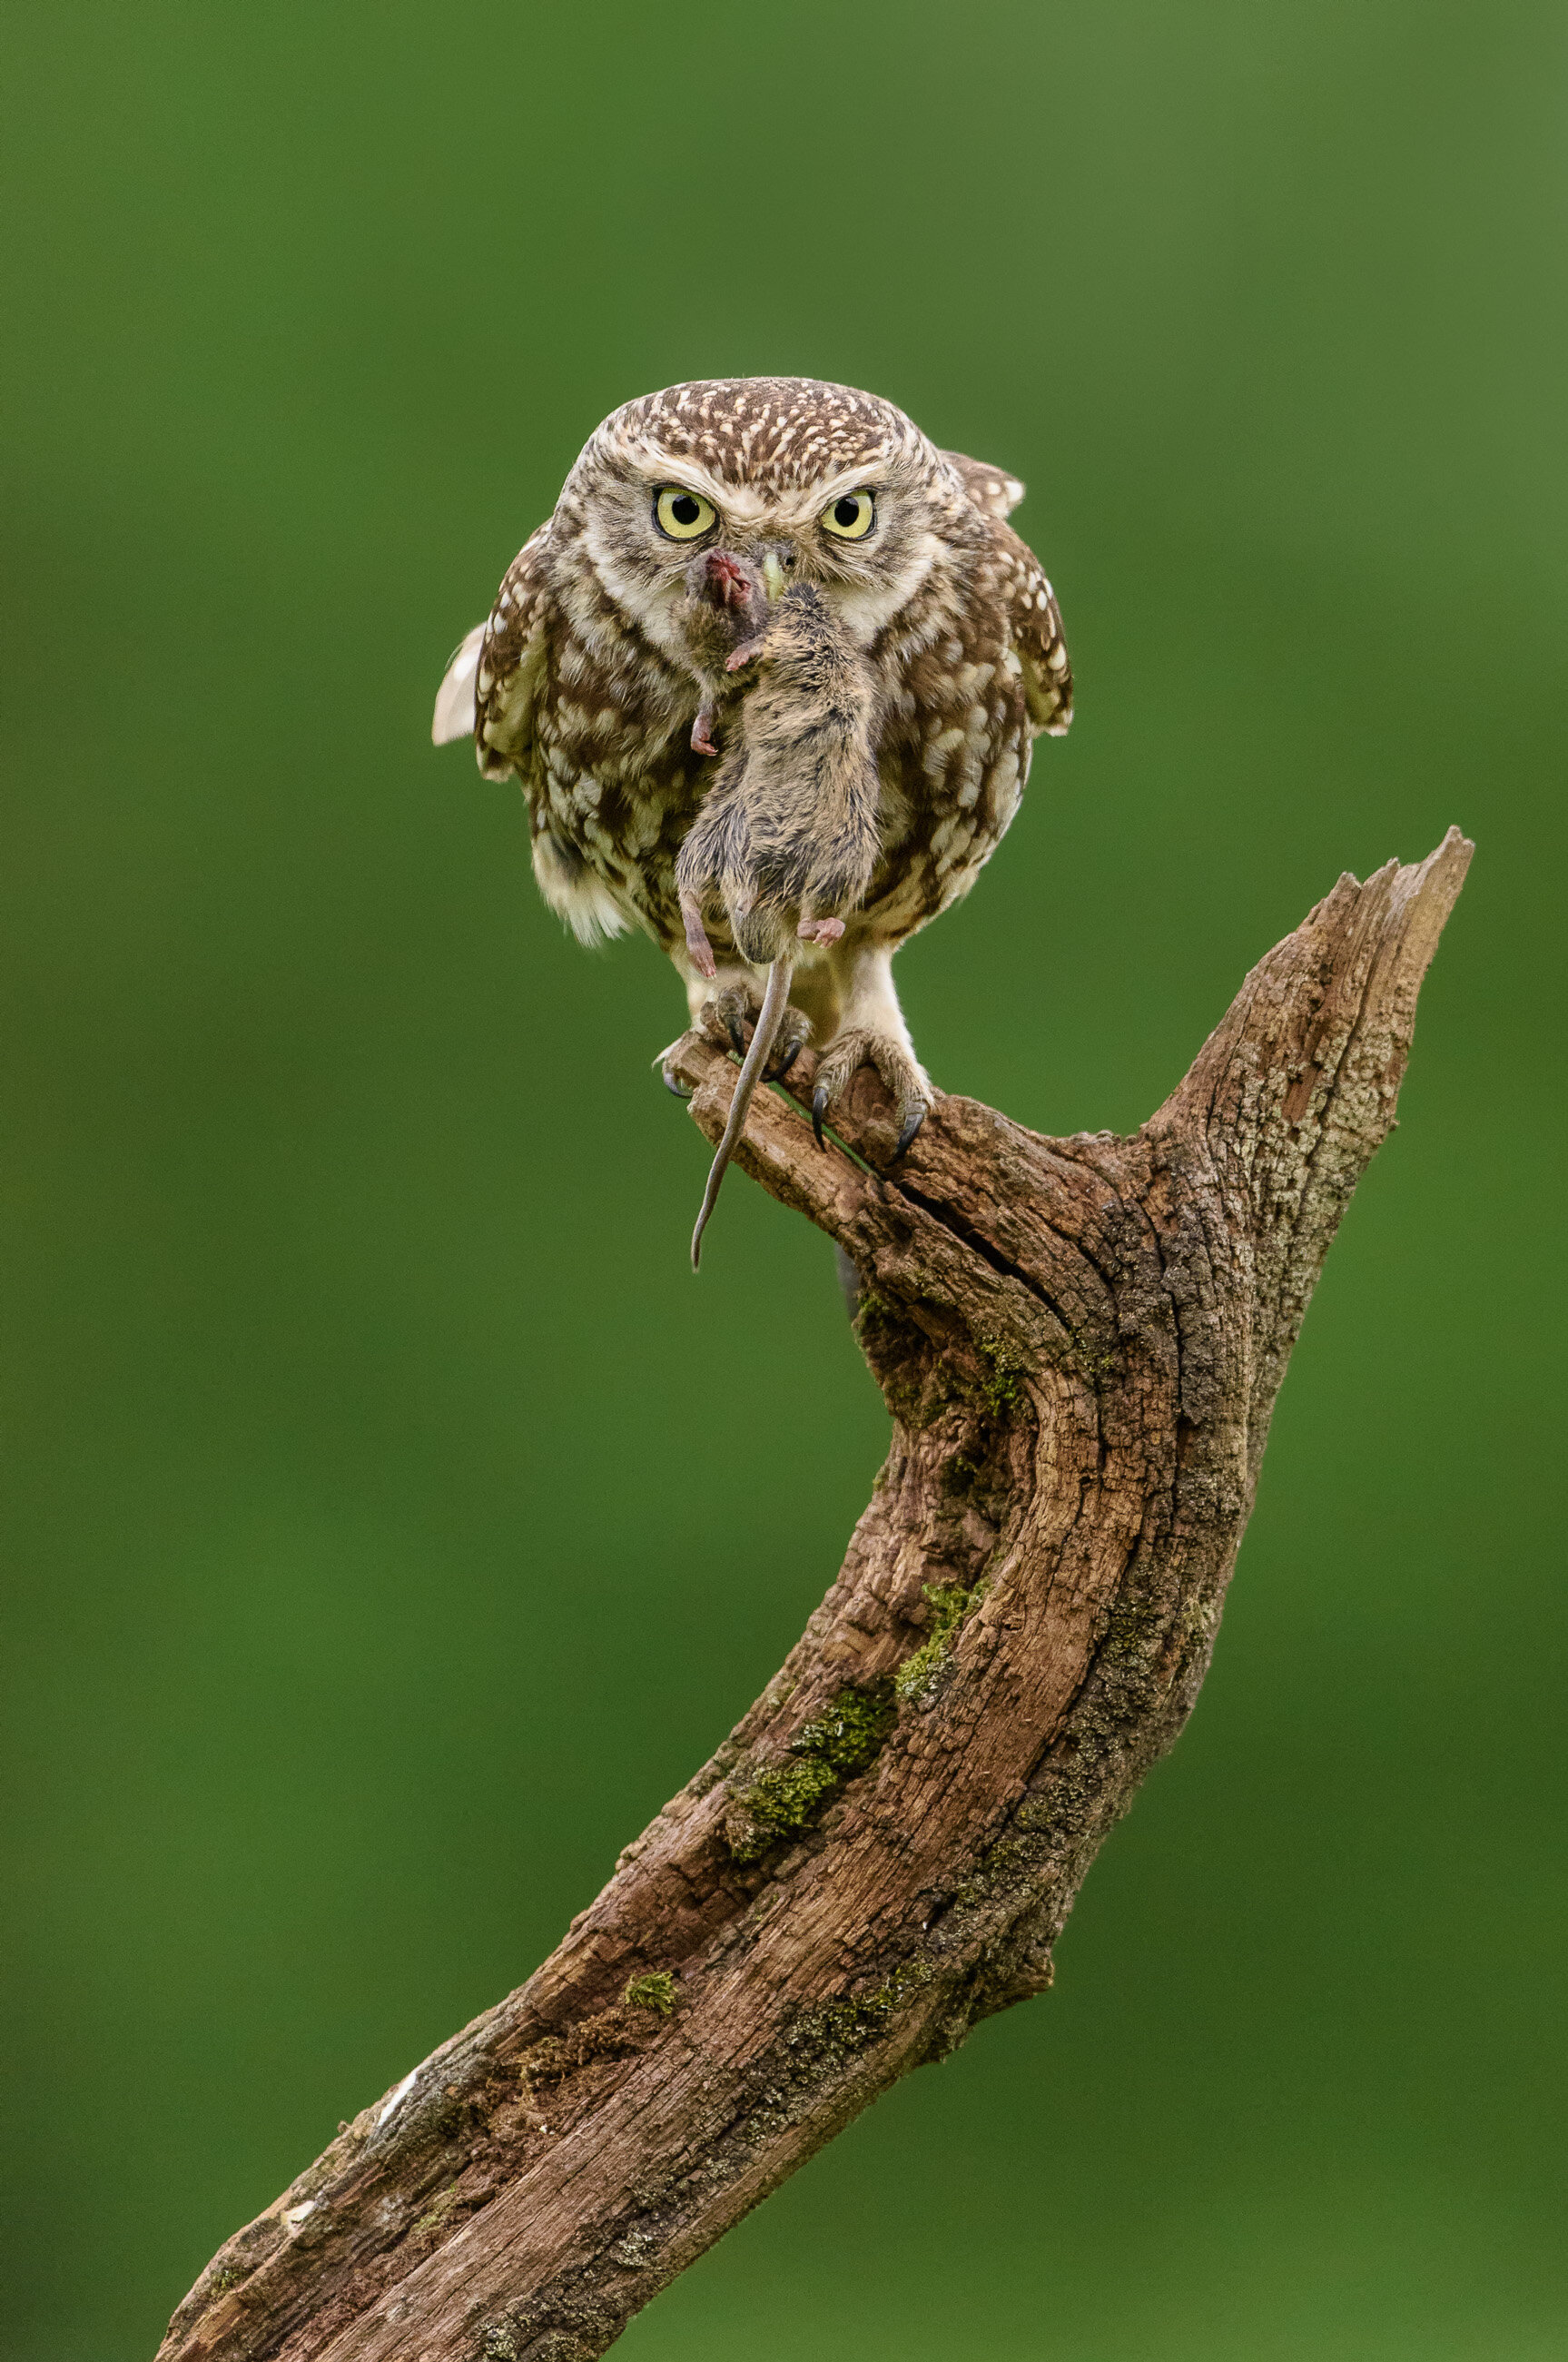 To close this article - an example of where f/4 really does help. This is an older shot of a little owl at dusk. There was hardly any light, and the extra stop of the f/4 lens made a real difference. Nikon D810, Nikon AF-S VR Nikkor 500mm f/4G ED, at f/4, 1/1250, ISO2000.